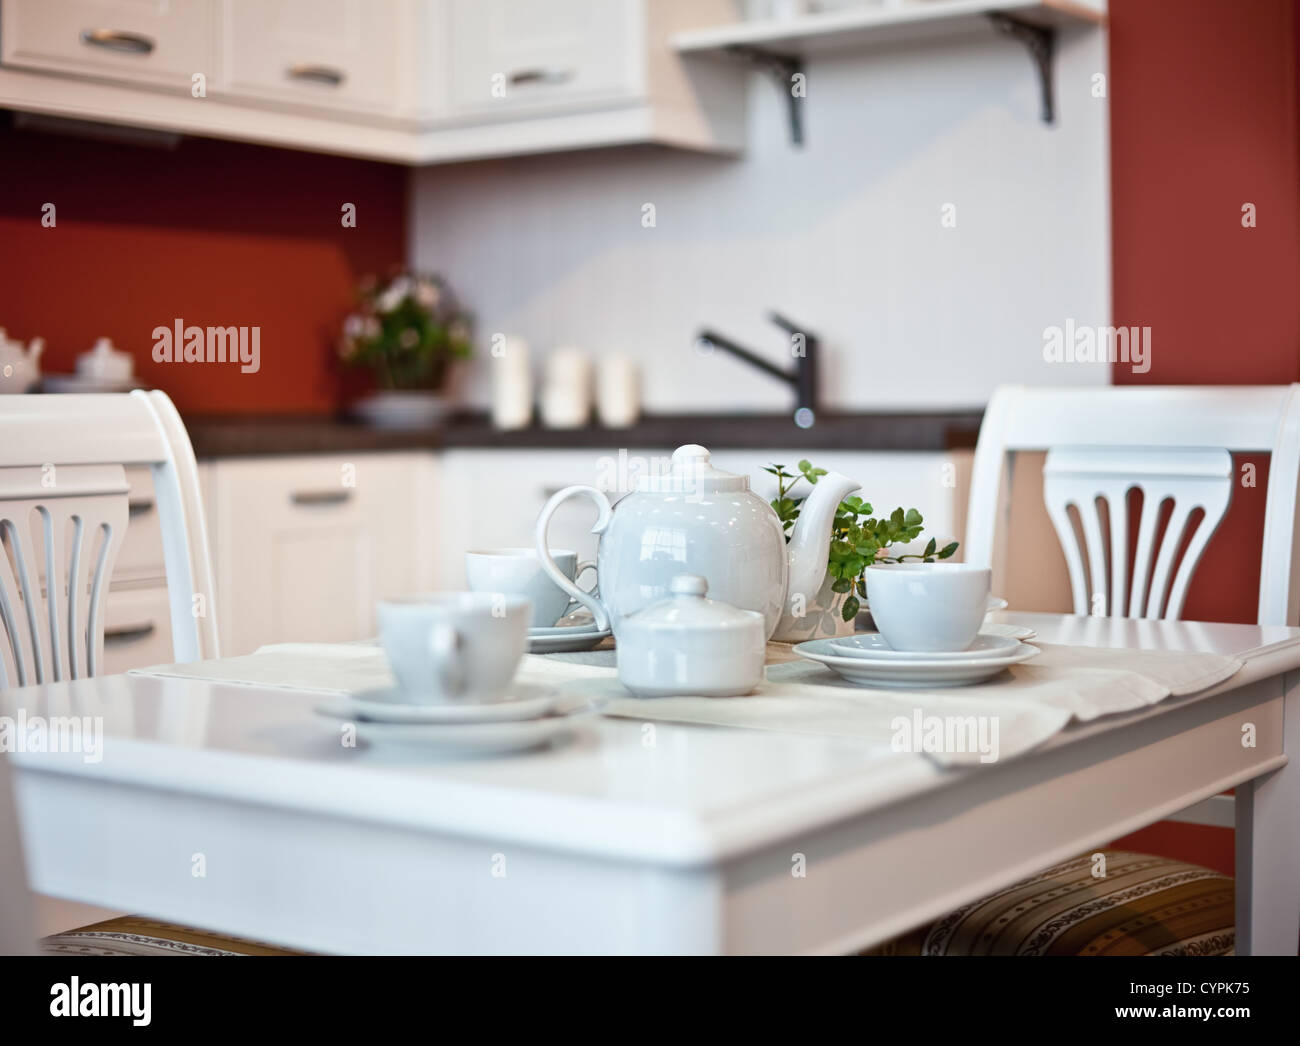 kitchen interior with  dishes  on table  (beautiful Depth Of Field effect) - Stock Image